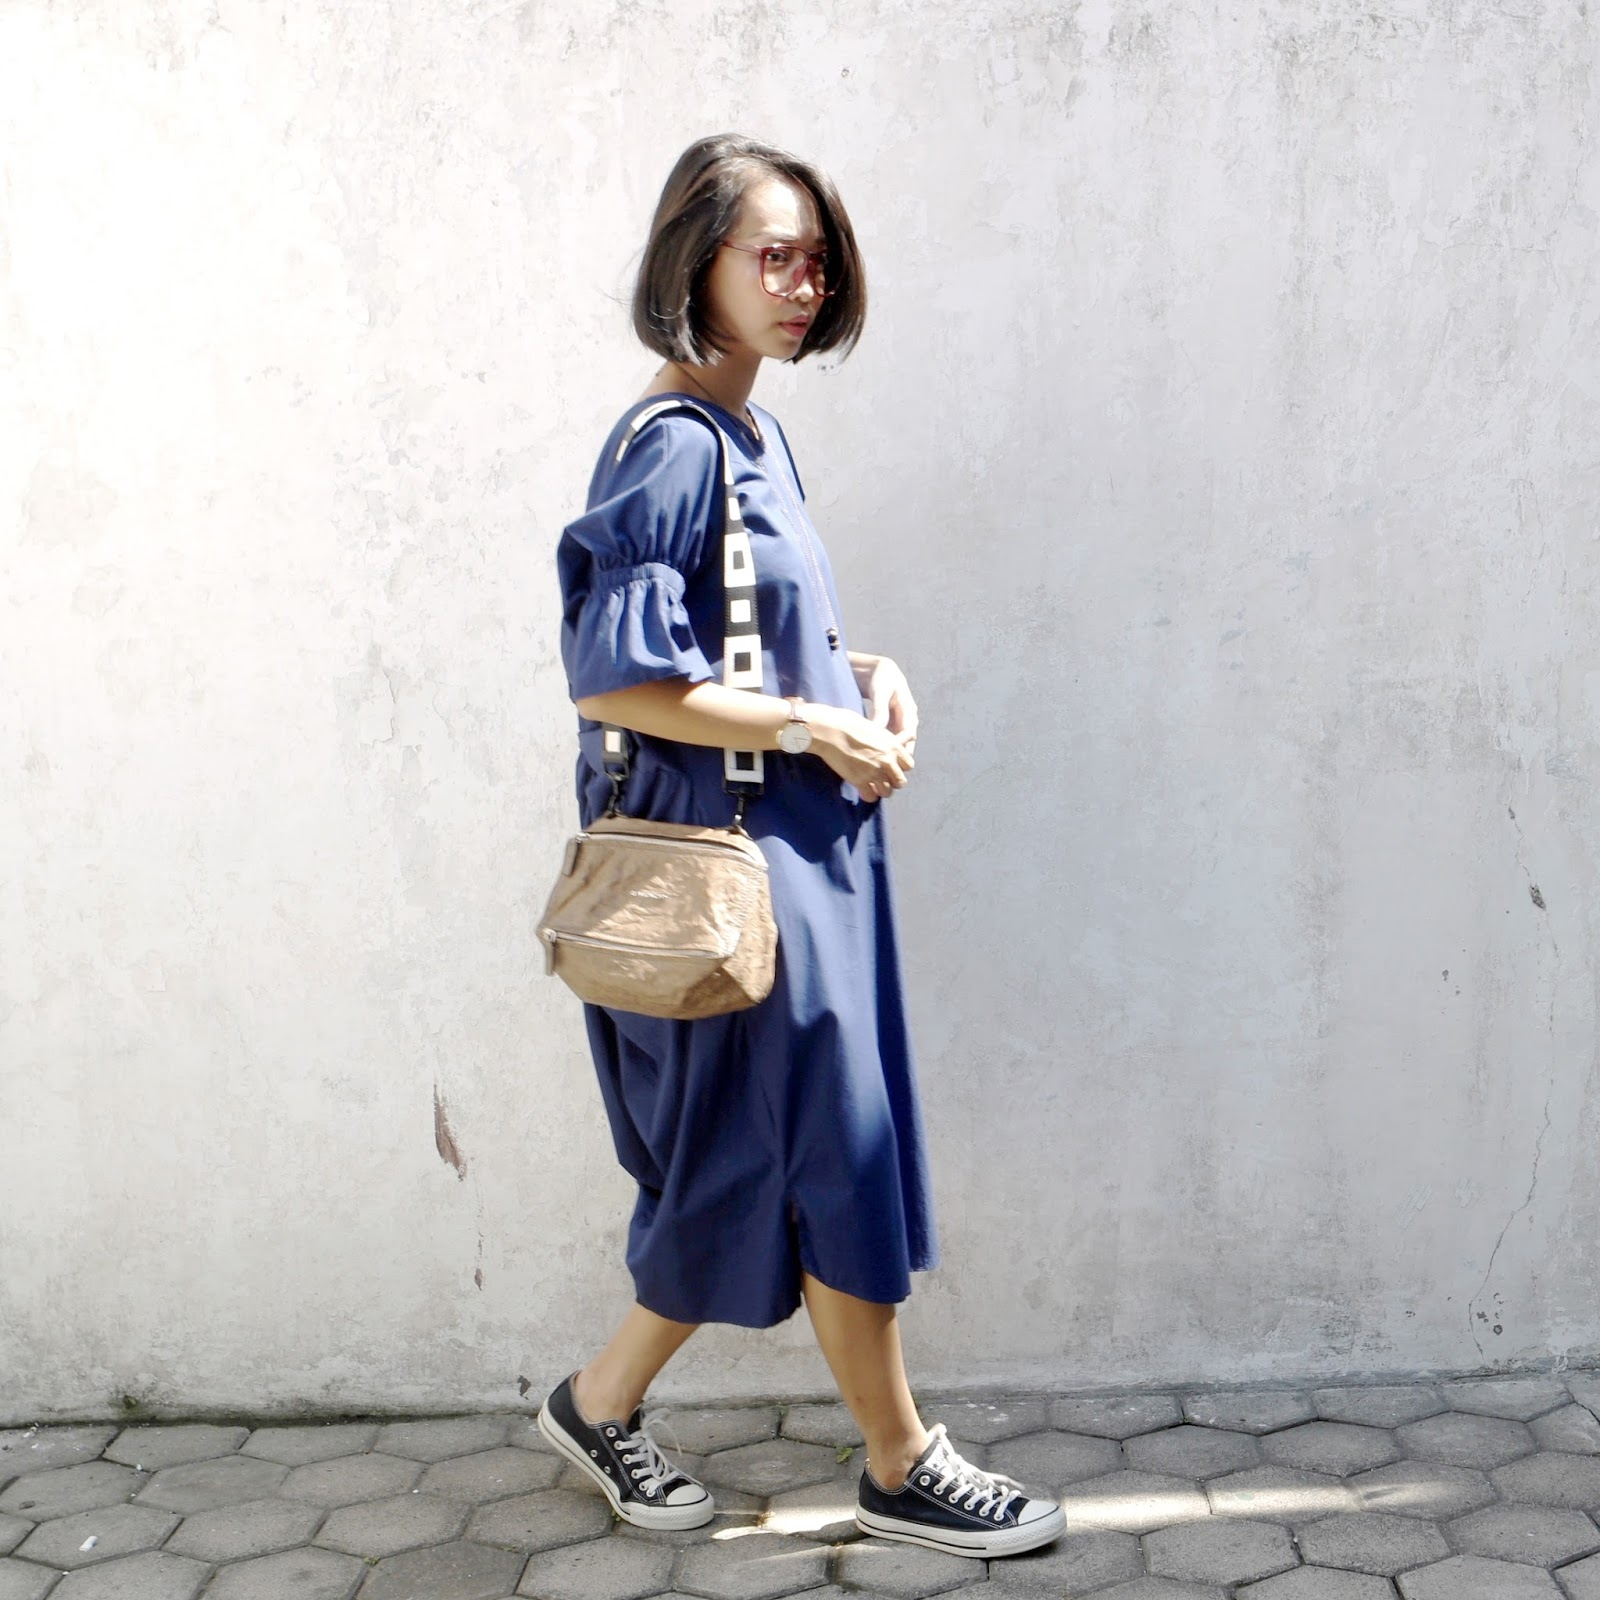 Petite Brown Sugar Tendencies Short Shirts Basic Long Collar Less White Putih M You Can See That I Replaced The Original Bag Strap With A Black And Why Because It Is Too For Me